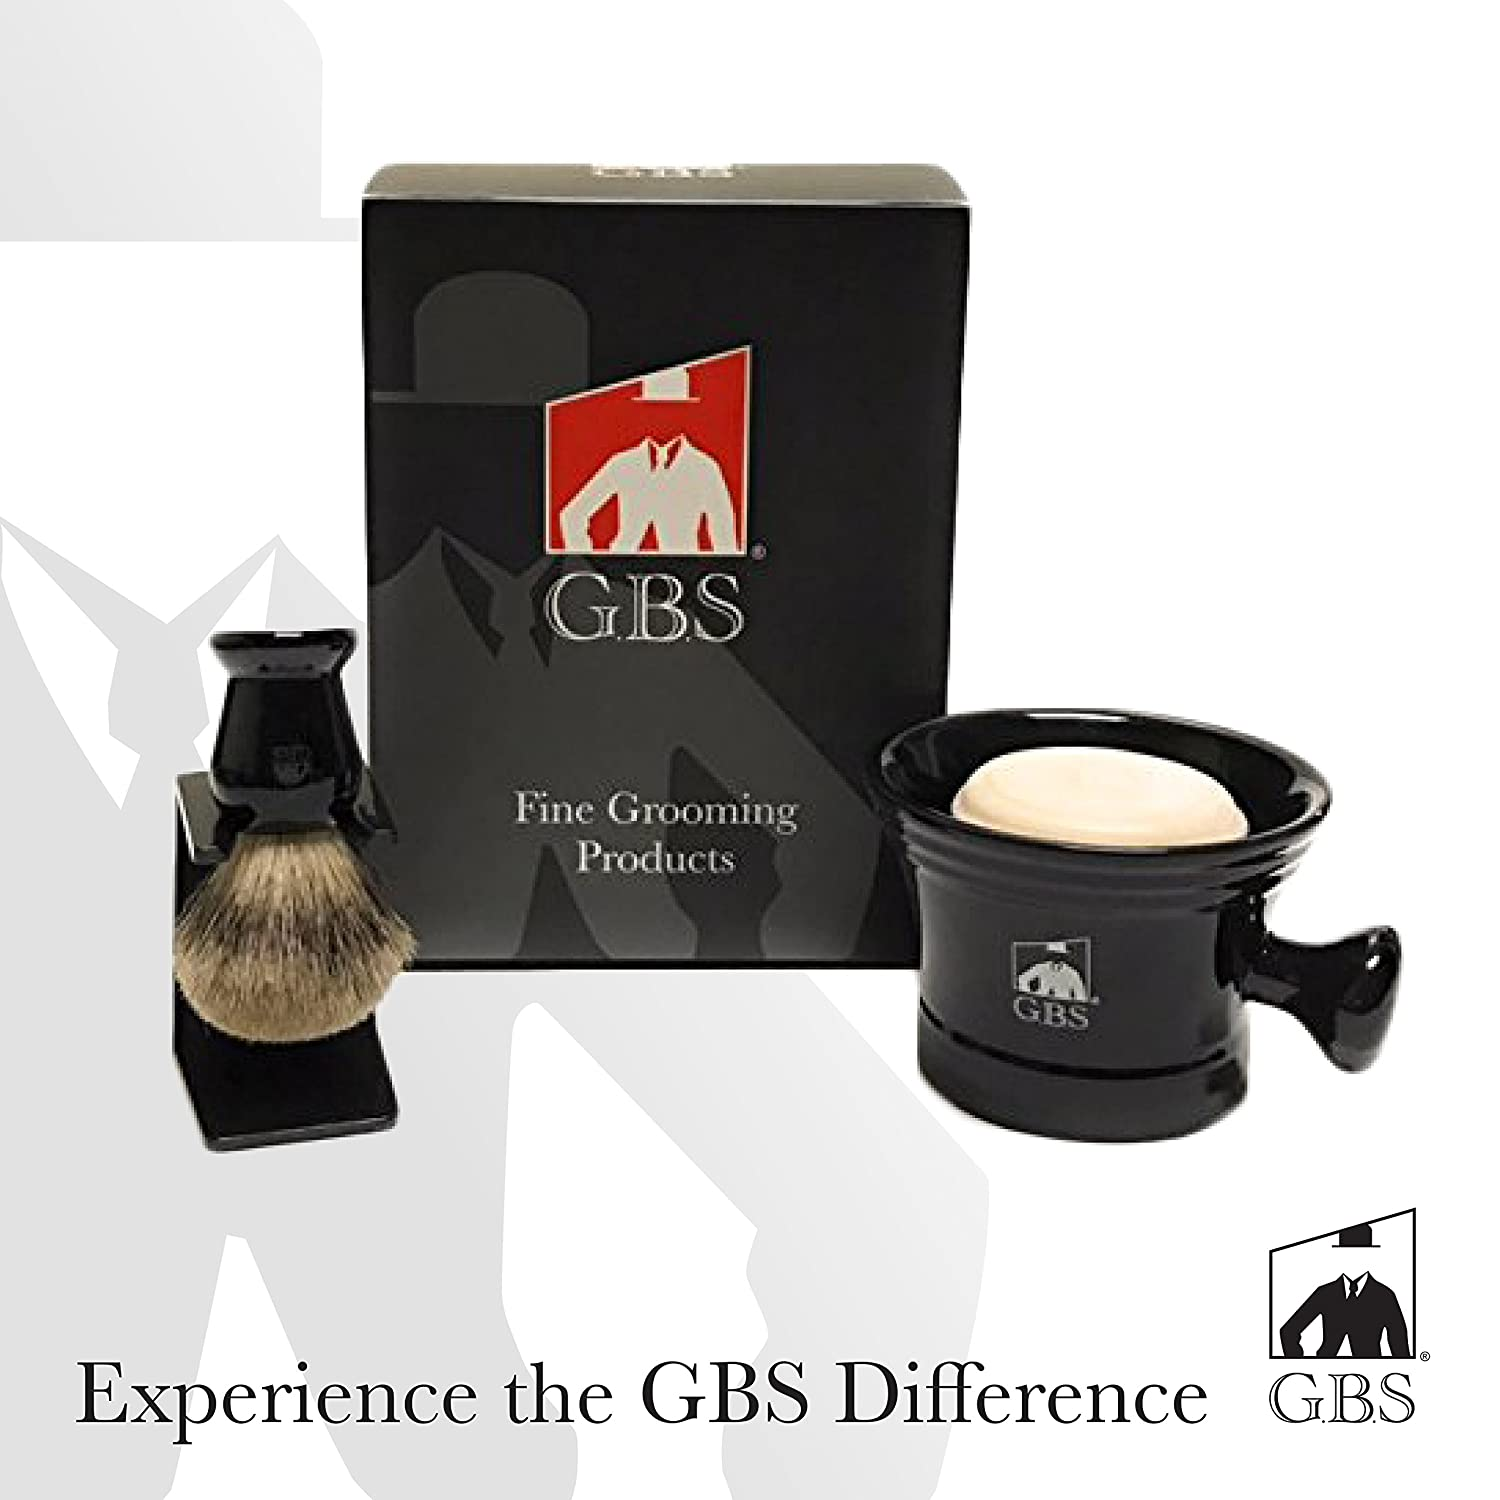 Men's Grooming Set - Comes with Gift Box - Black Shaving Mug with Knob Handle, 100% Pure Badger Brush, Brush Stand and 97% All Natural Gbs Ocean Driftwood Shave Soap by GBS